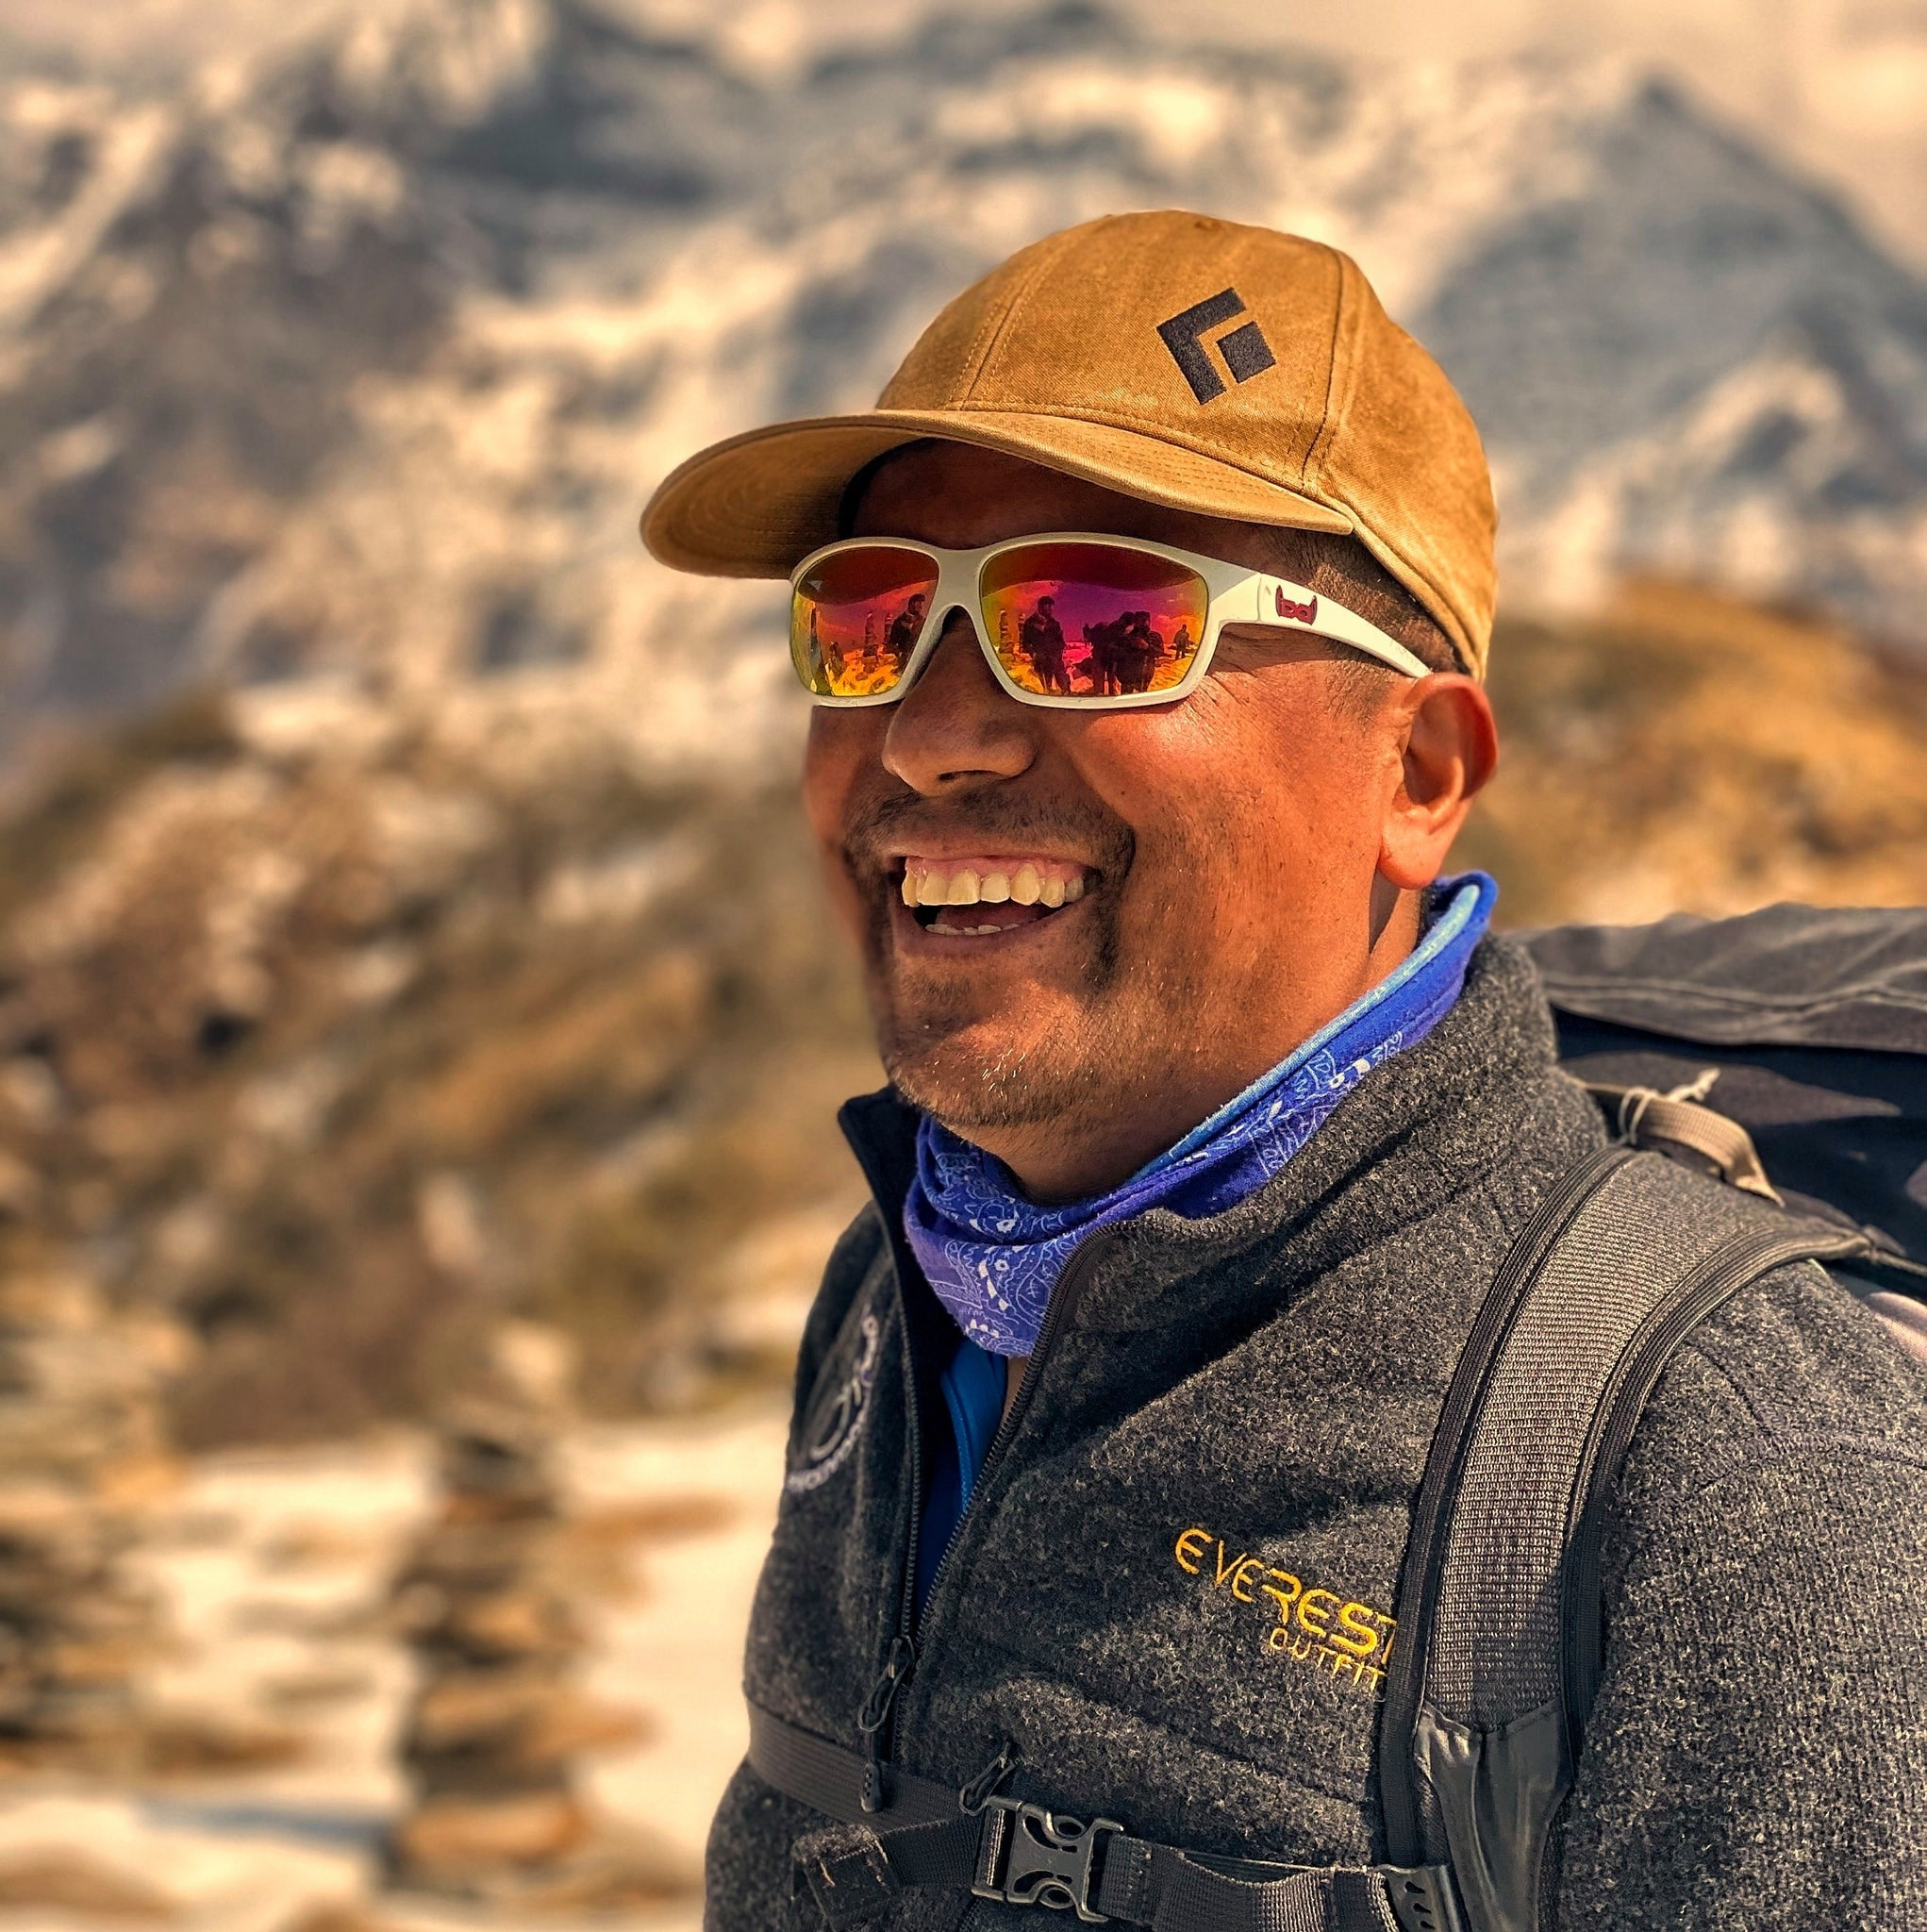 Popular mountain guide Sherpa offers five key suggestions to make expeditions environment friendly